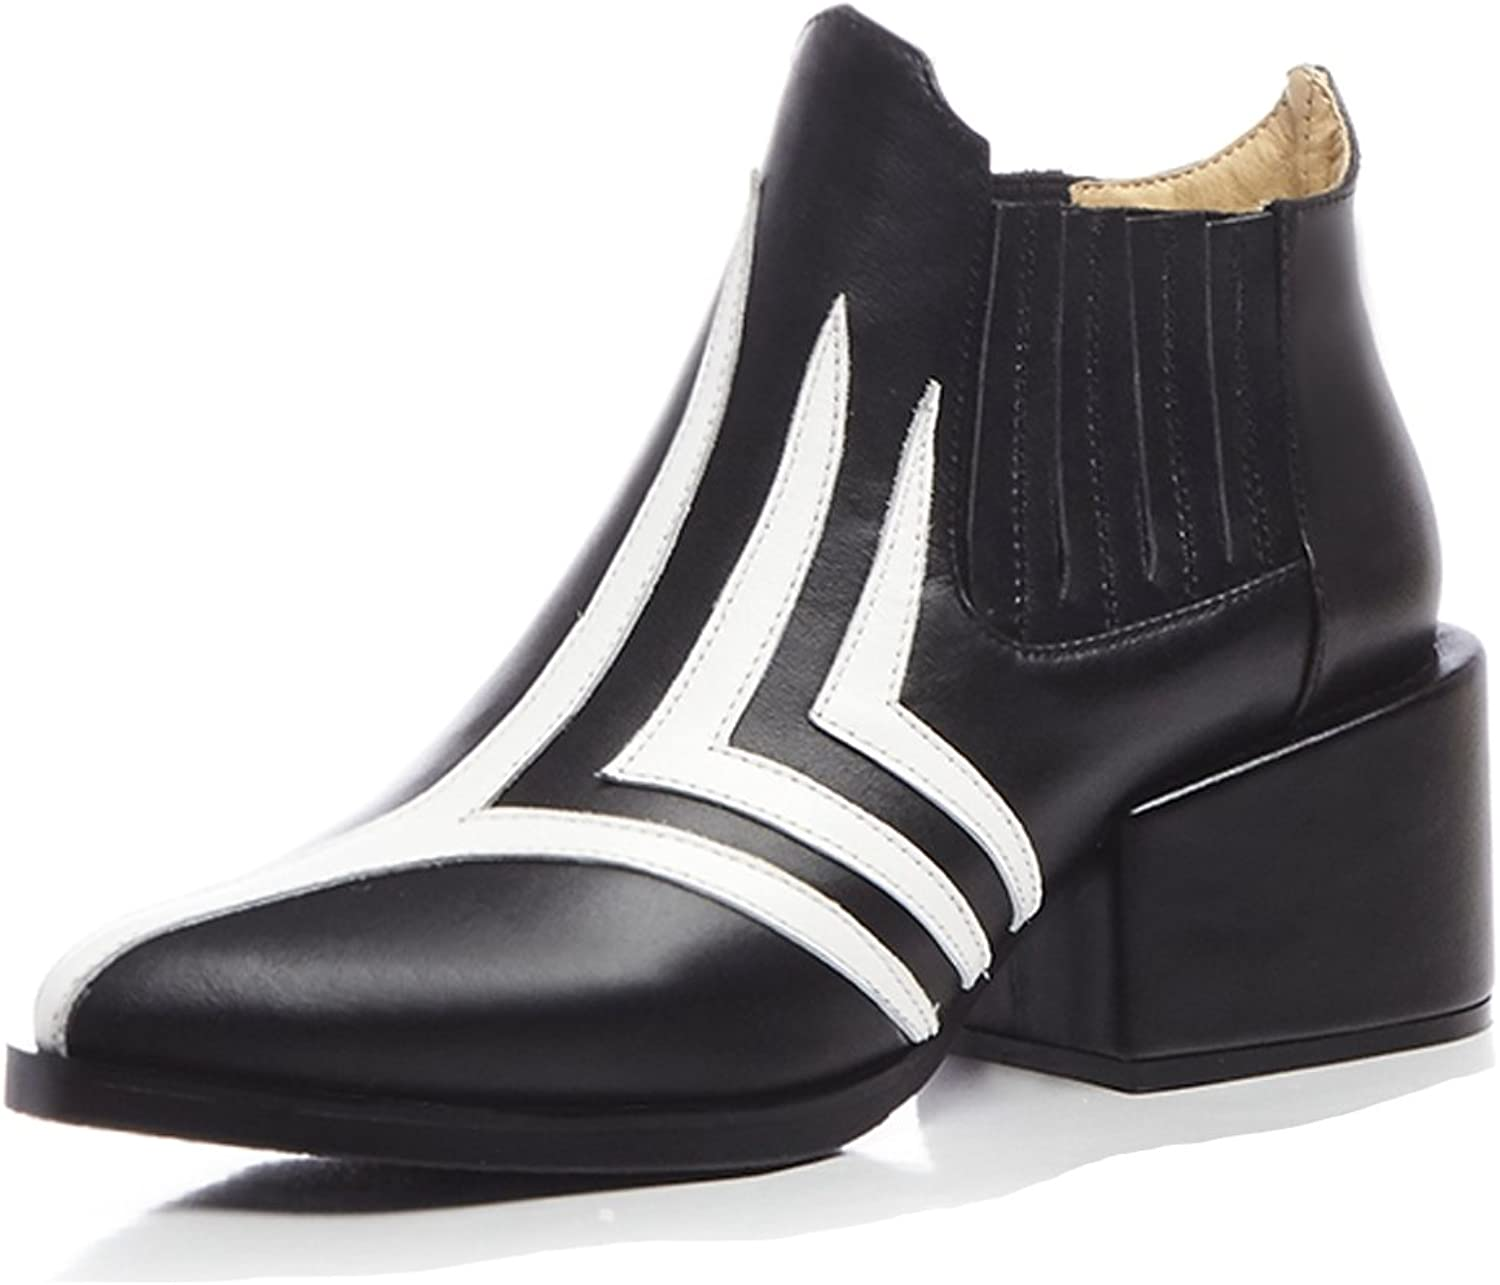 MINIVOG Women's Stripe Decoration Handcrafted Leather Mid Heel Ankle Boots